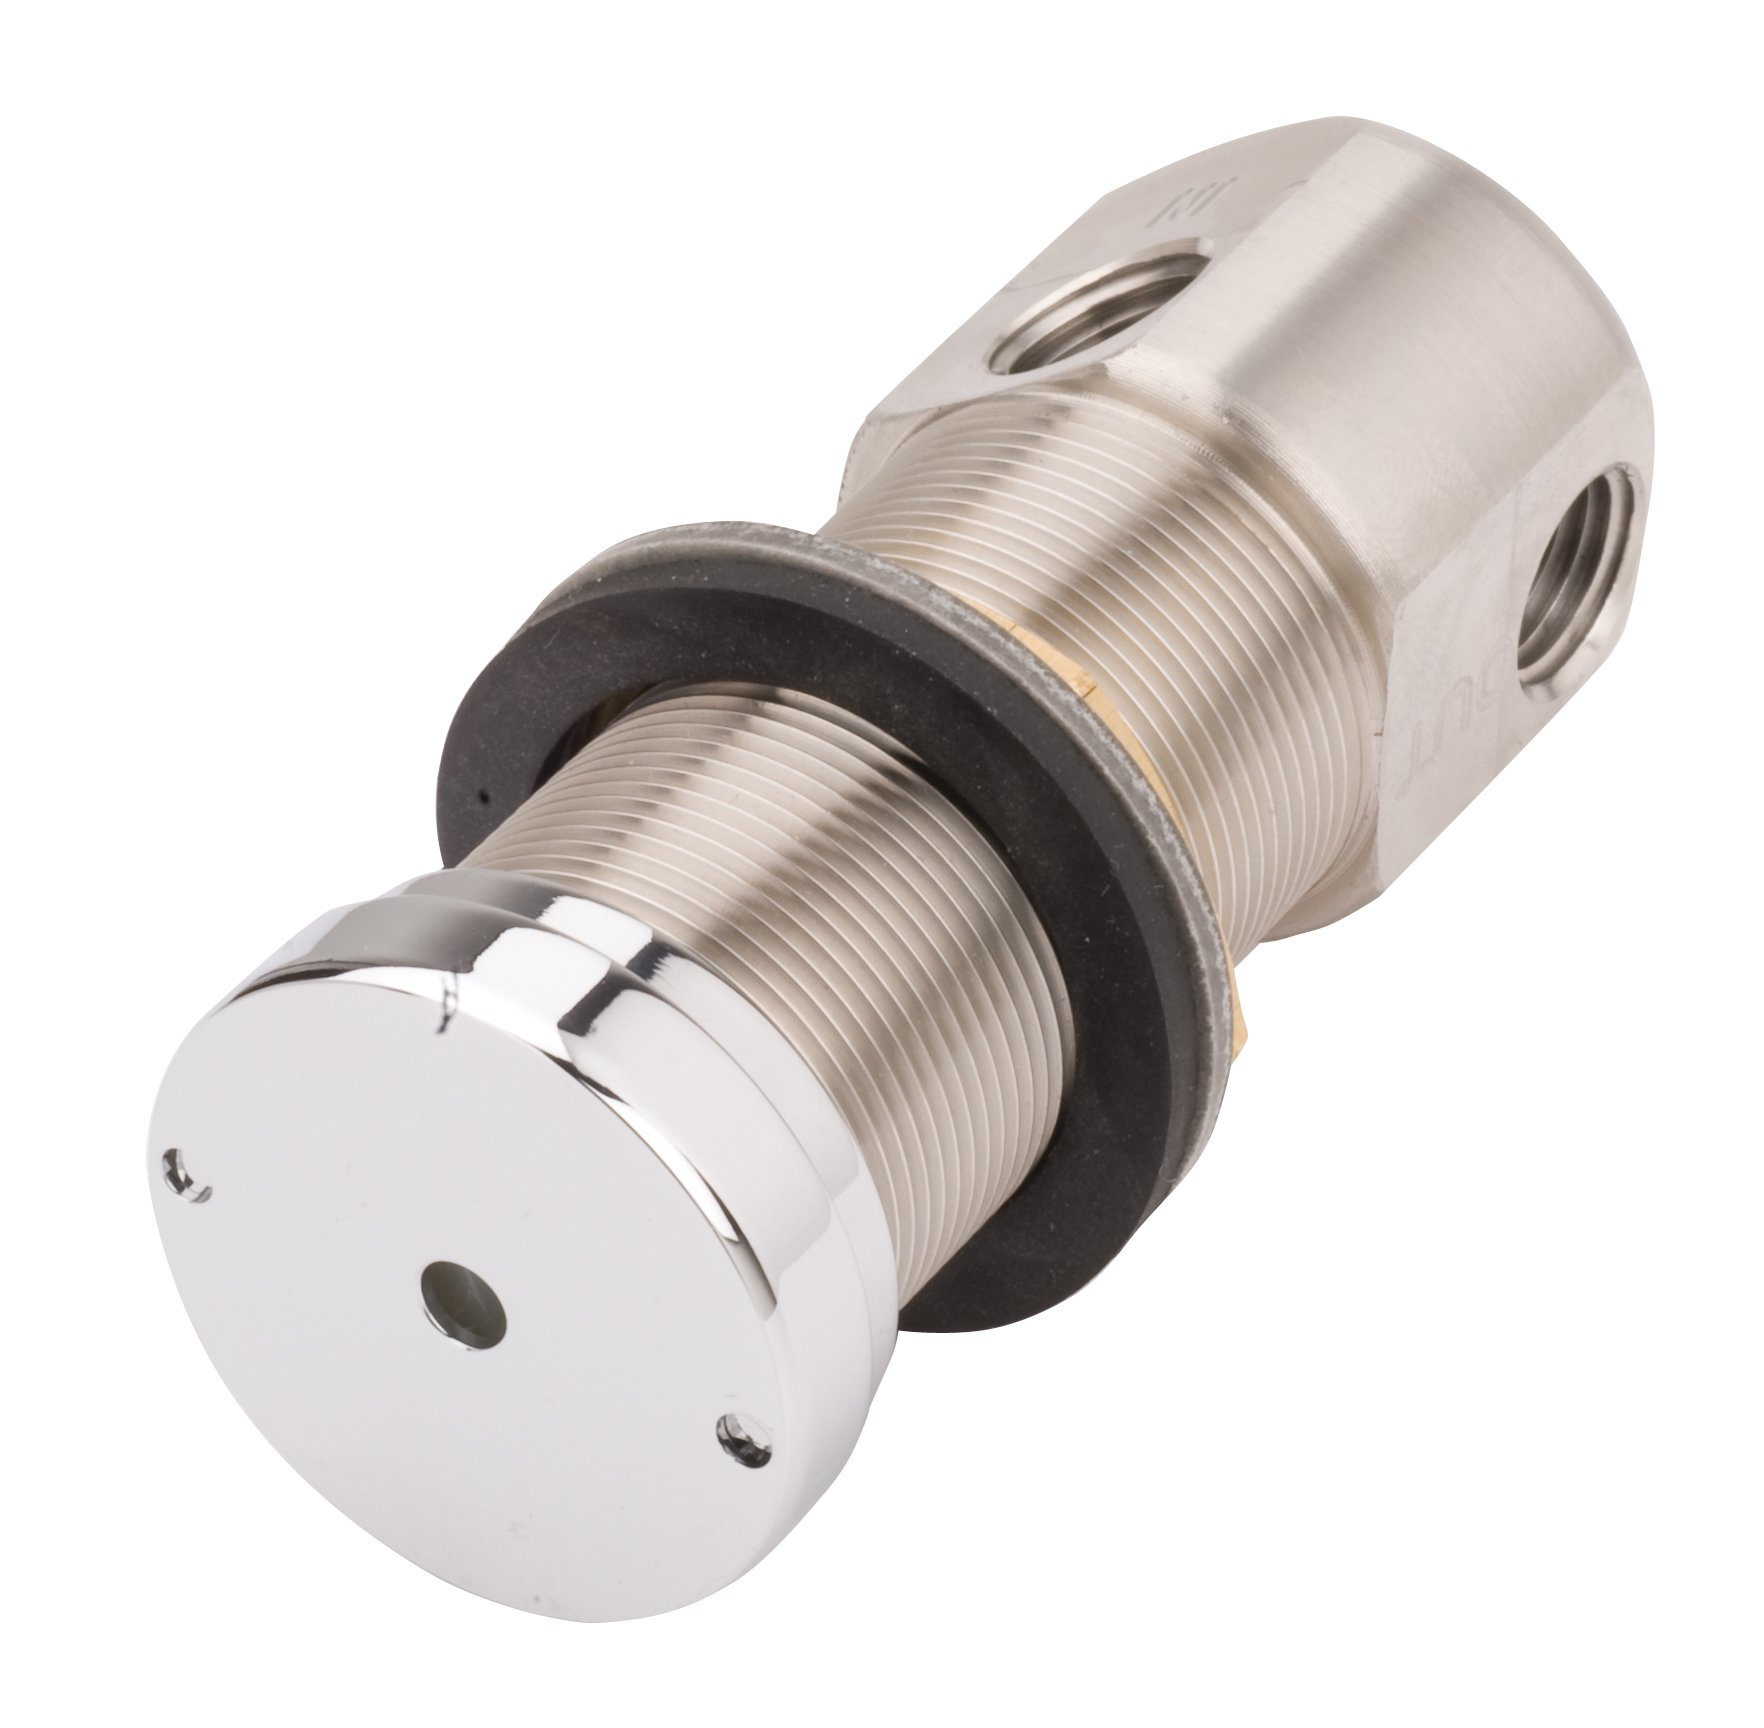 Haws 5874PB Patented Lead-Free Stainless Steel Push Activated Valve by Haws (Image #1)